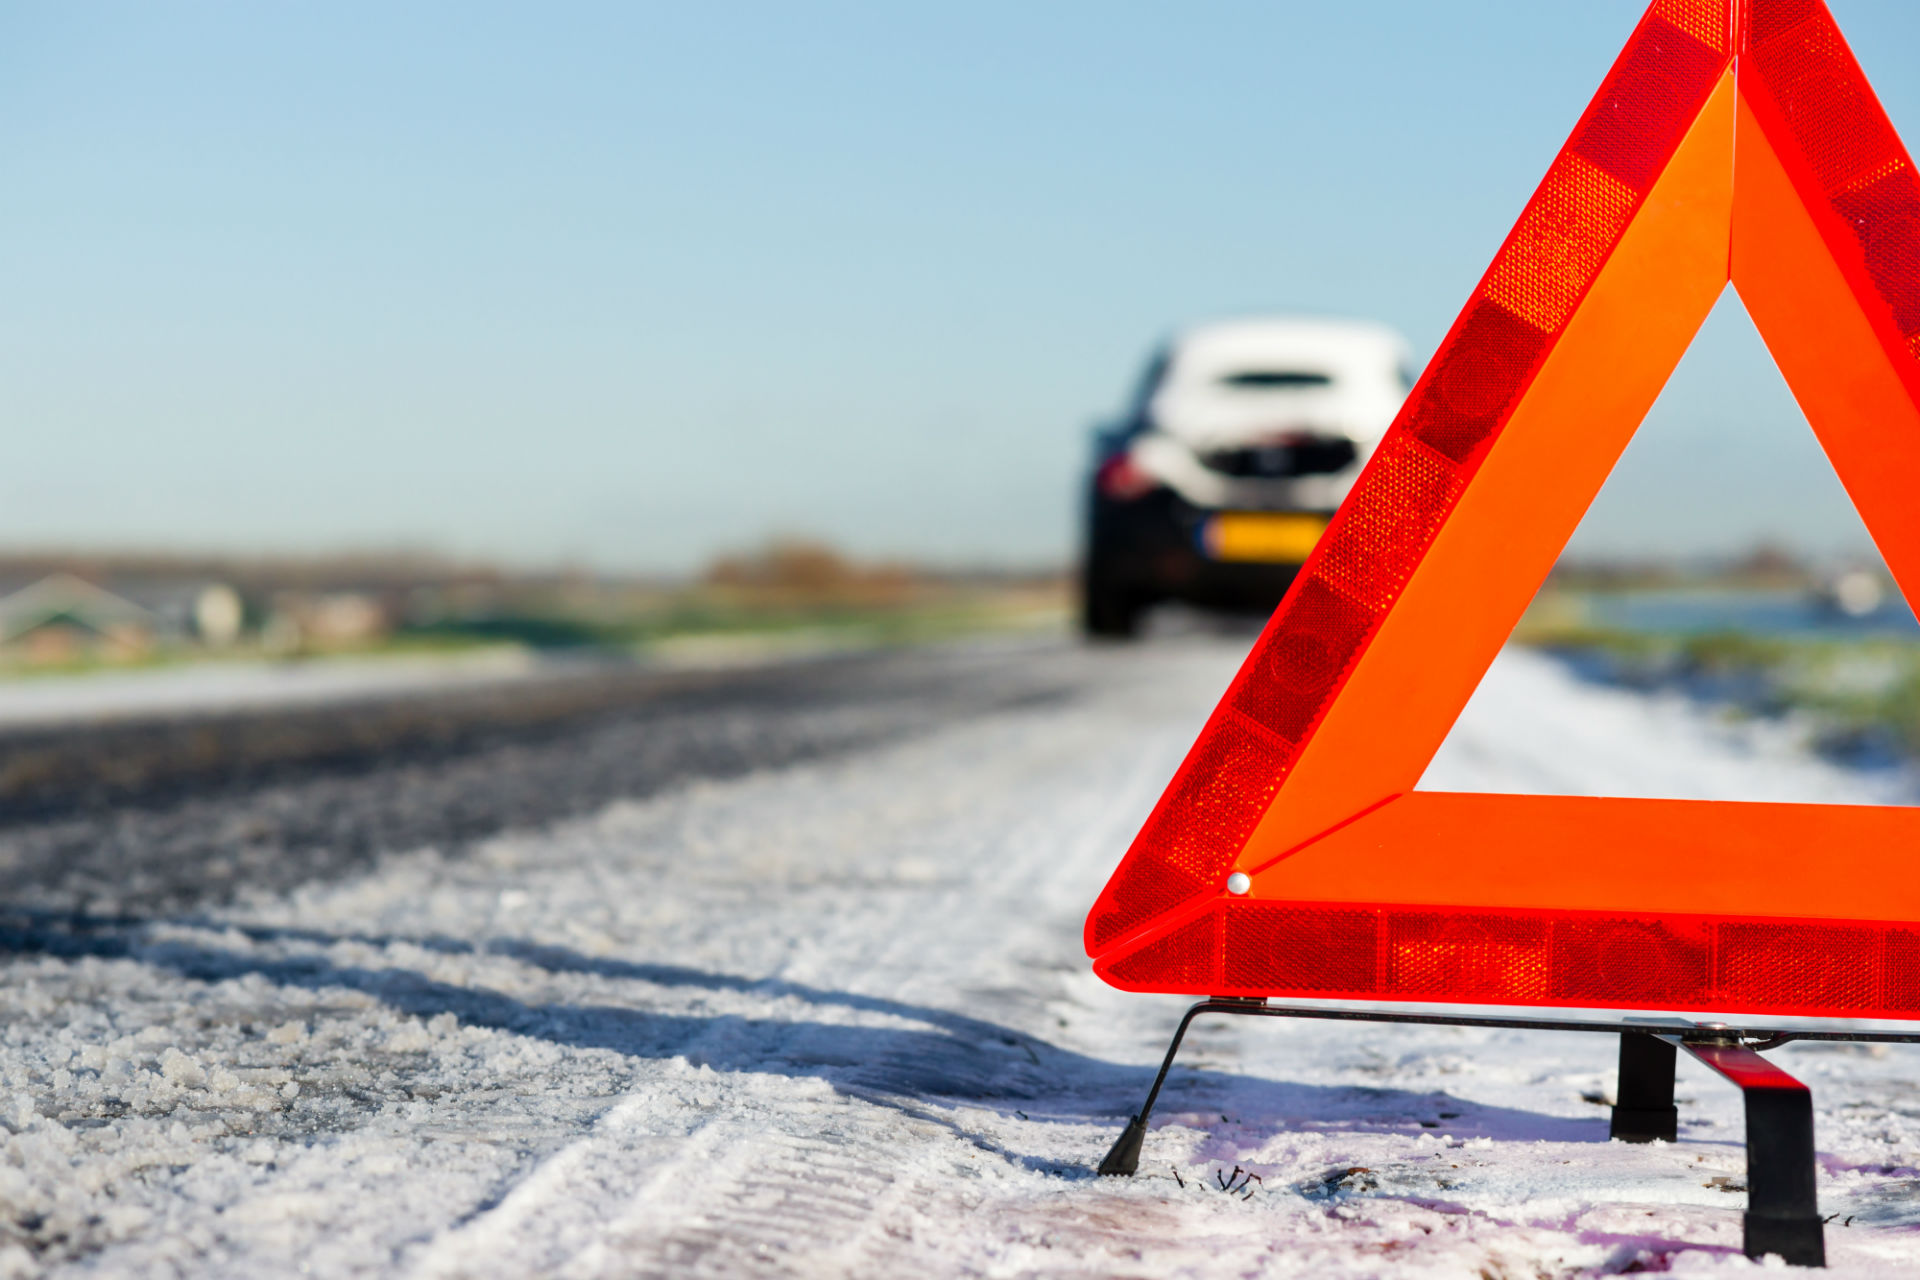 snowy road with warning triangle placed further behind a car